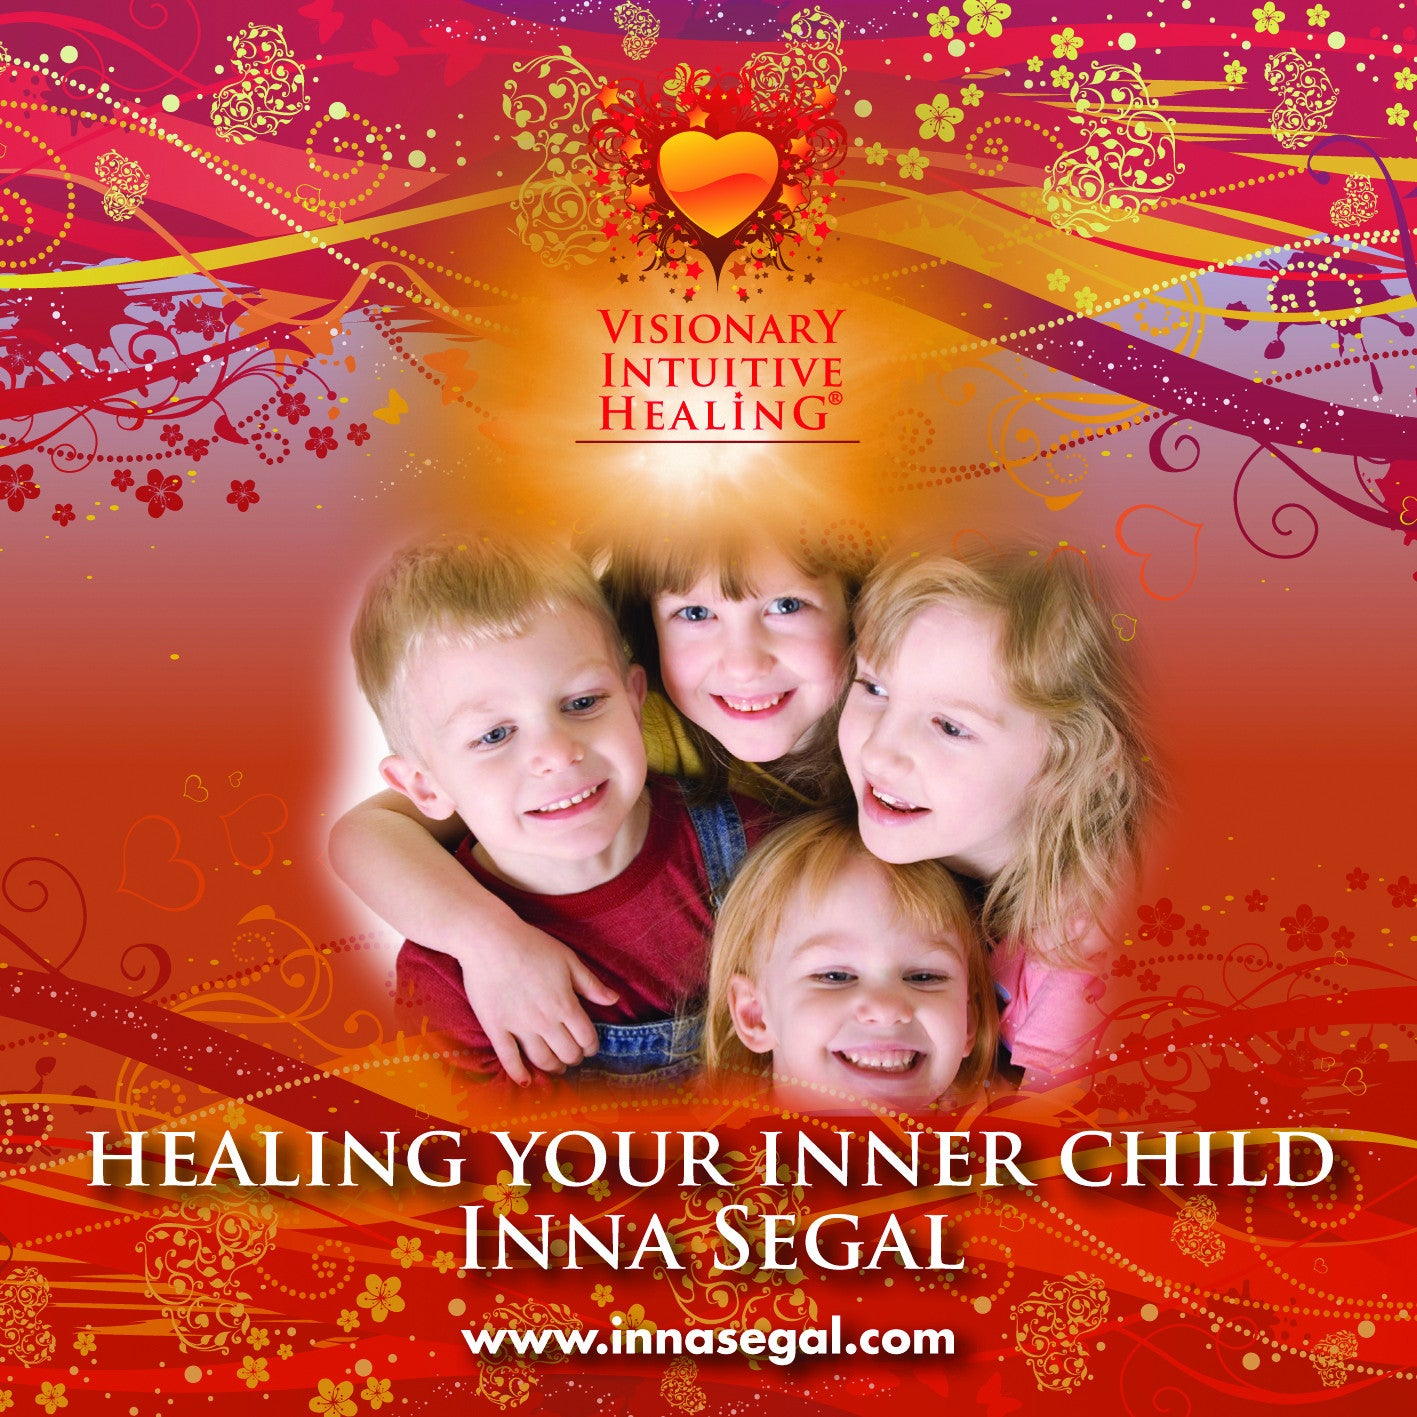 Healing Your Inner Child: Visionary Intuitive Healing